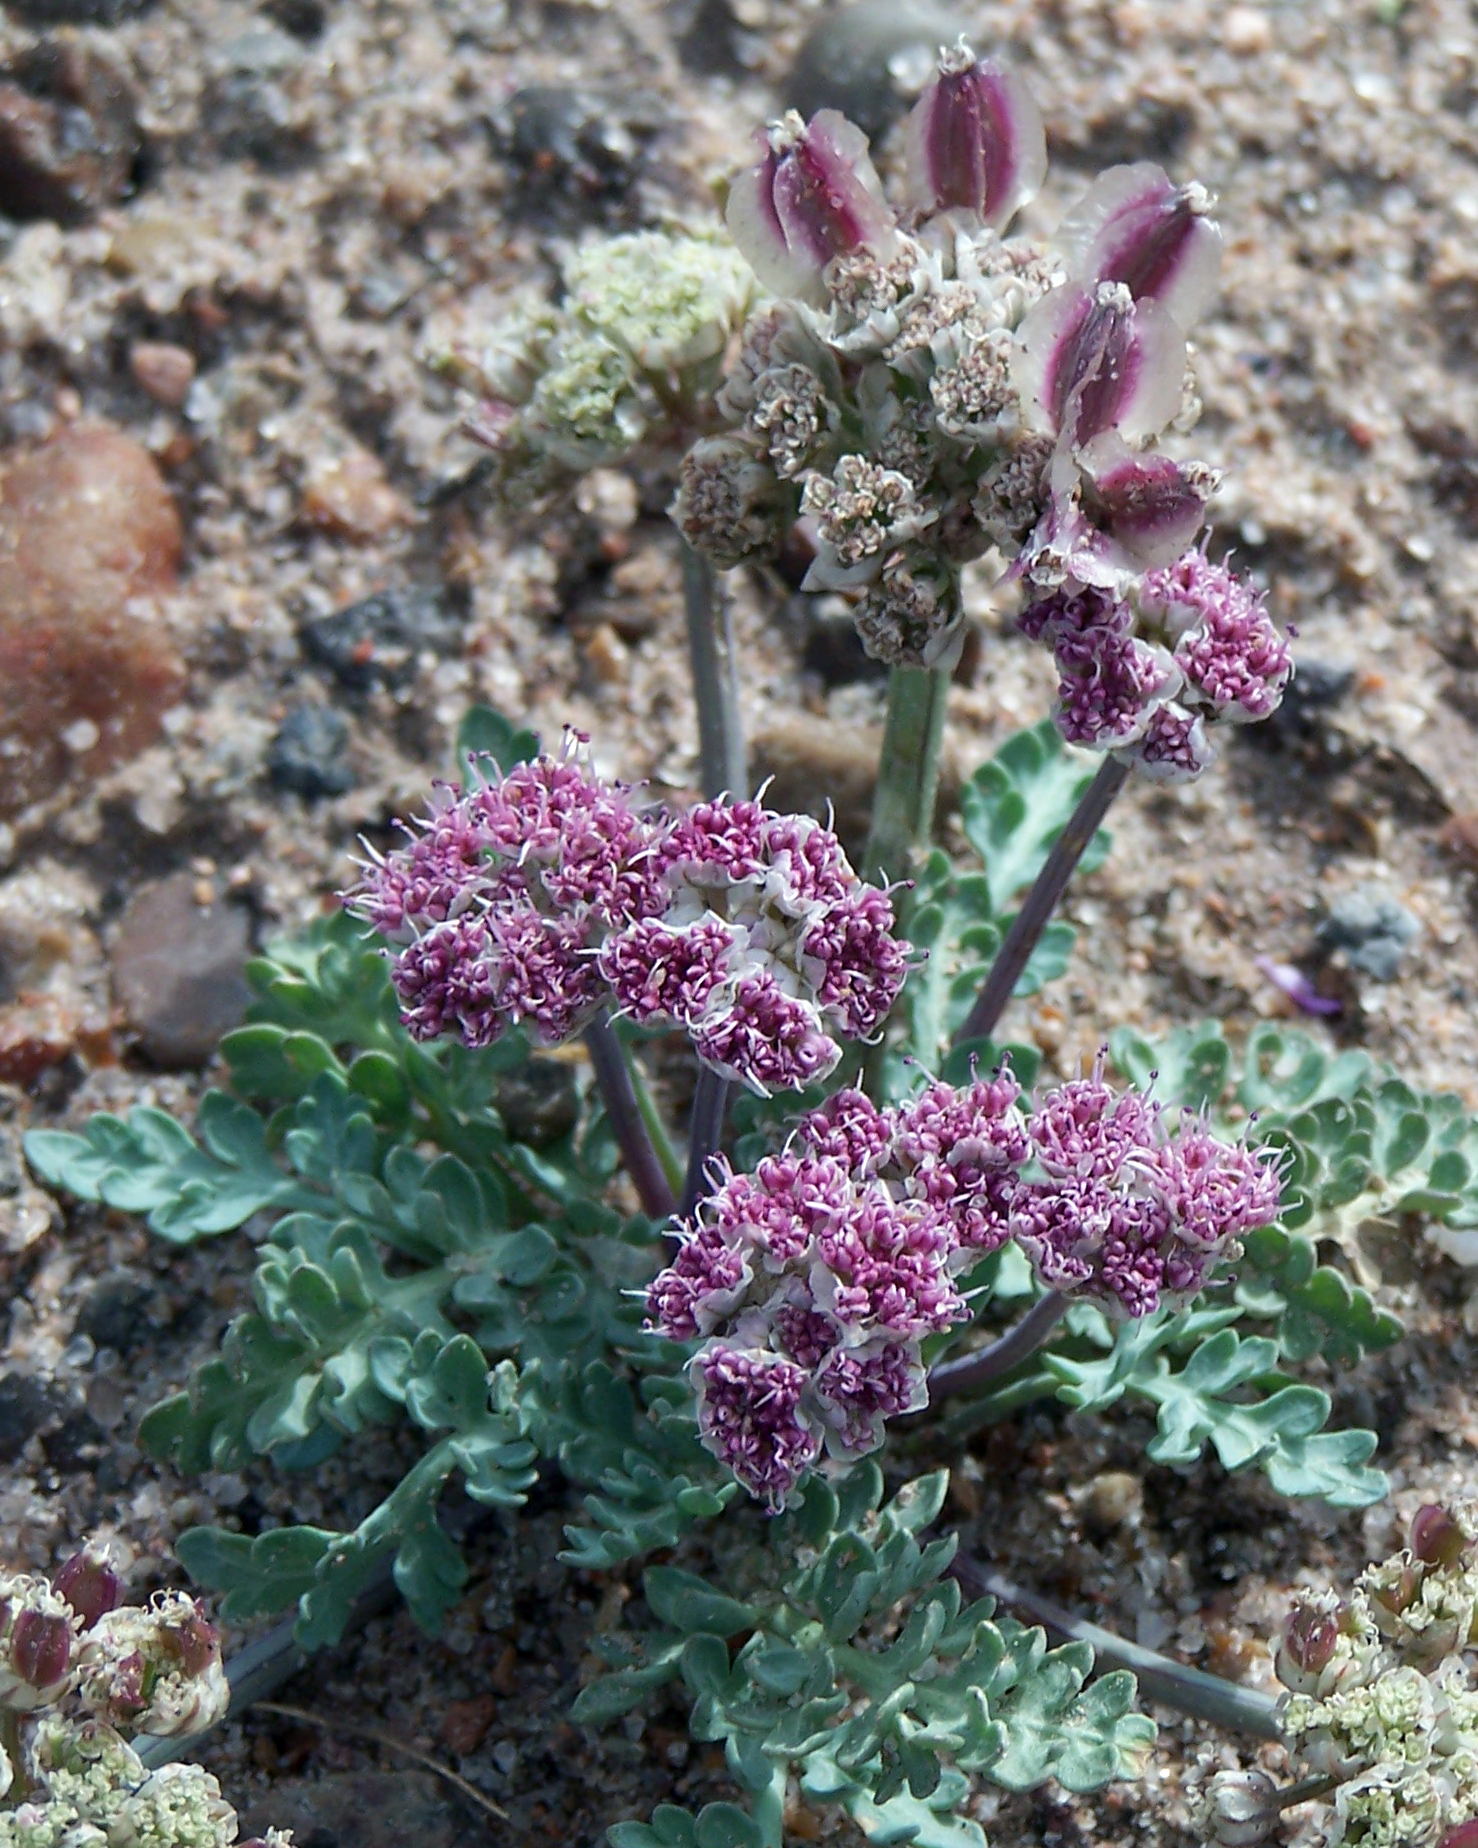 Bulbous Spring Parsley: Tasty - A NATiVE, early-Spring, DROUGHT-TOLERANT root vegetable.